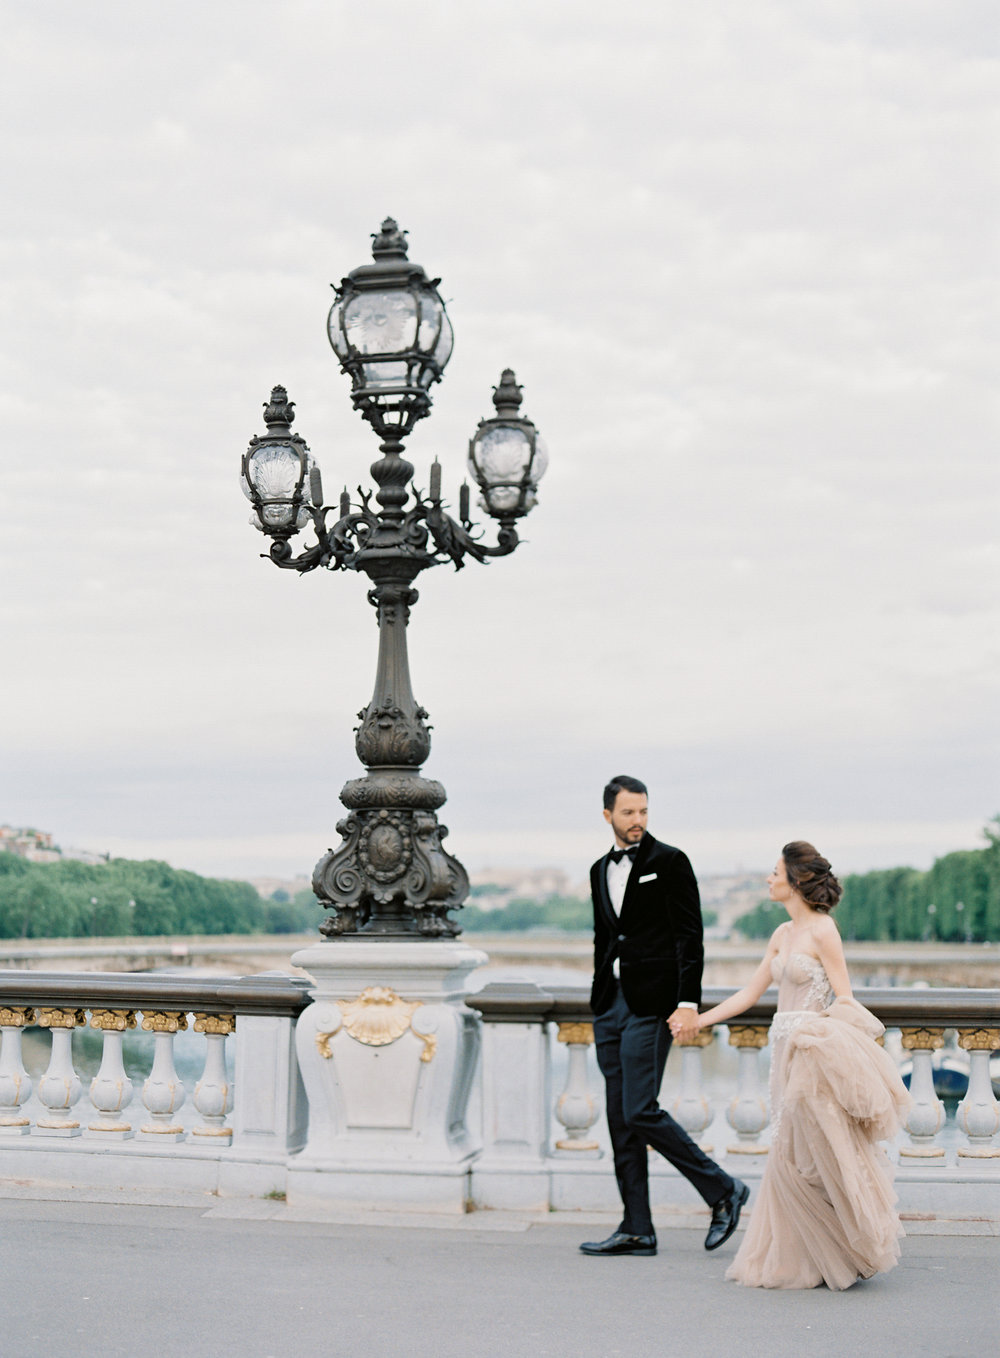 Paris-France-Film-Wedding-Carrie King Photographer-127.jpg